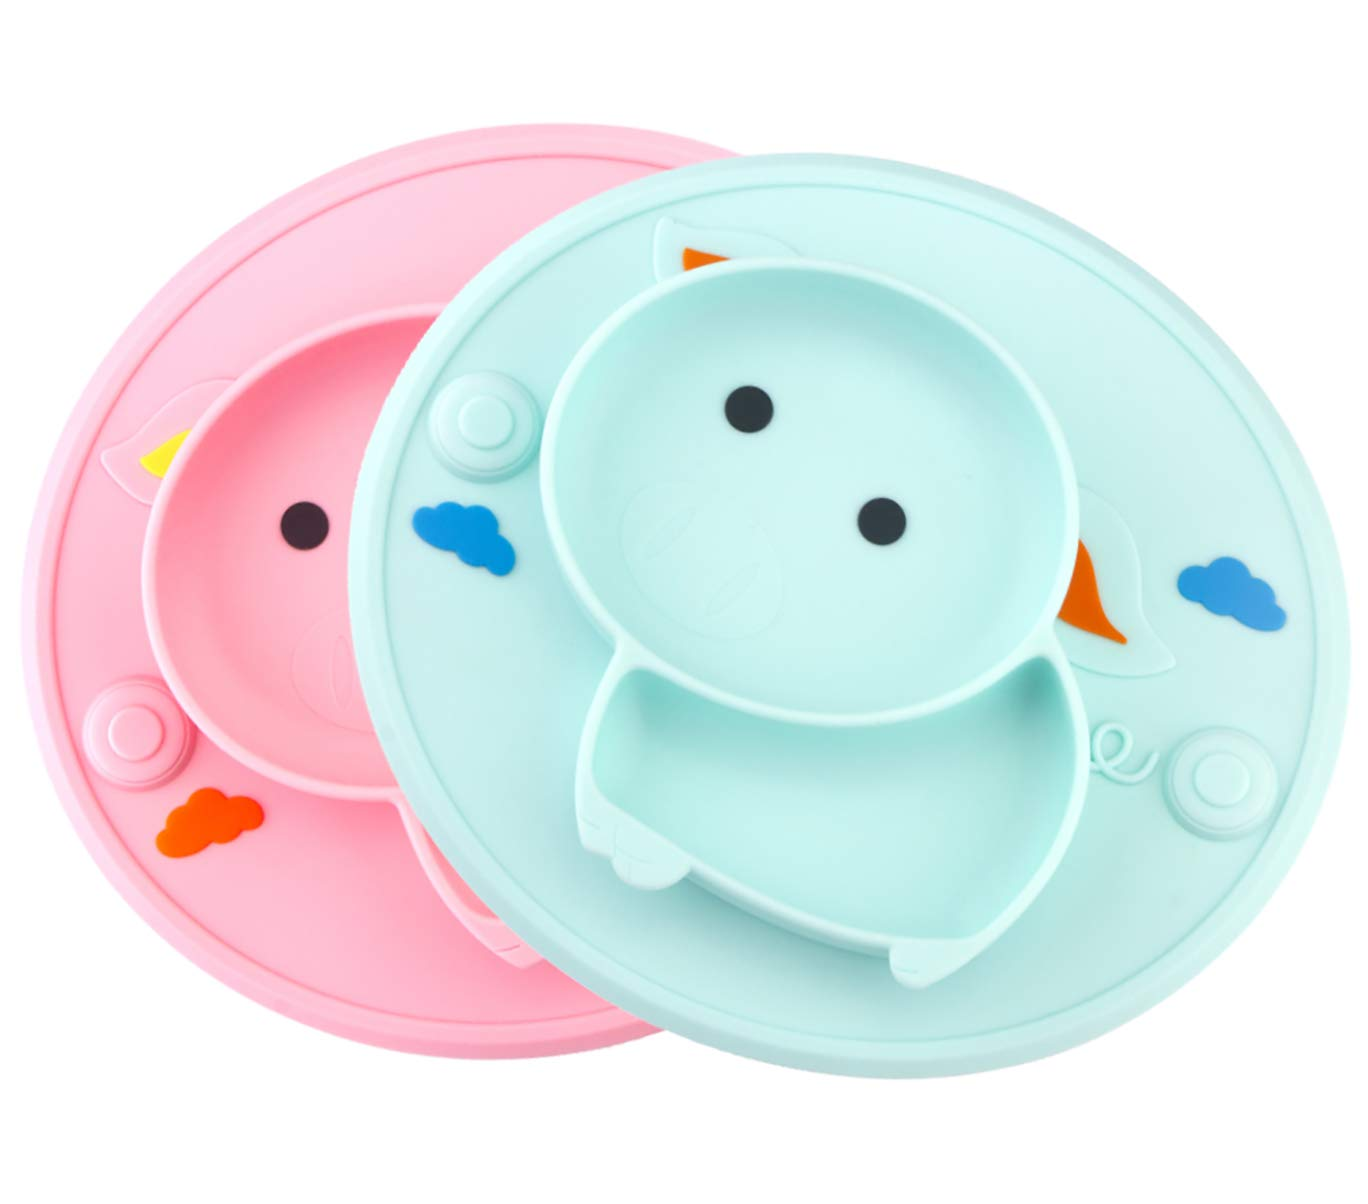 Baby Silicone Plate Suction Toddler Plates Mini Plate Placemat for Kids and Infants Self Feeding One-Piece Strong Suction BPA Free, Microwave & Dishwasher Safe (Green/Pink)